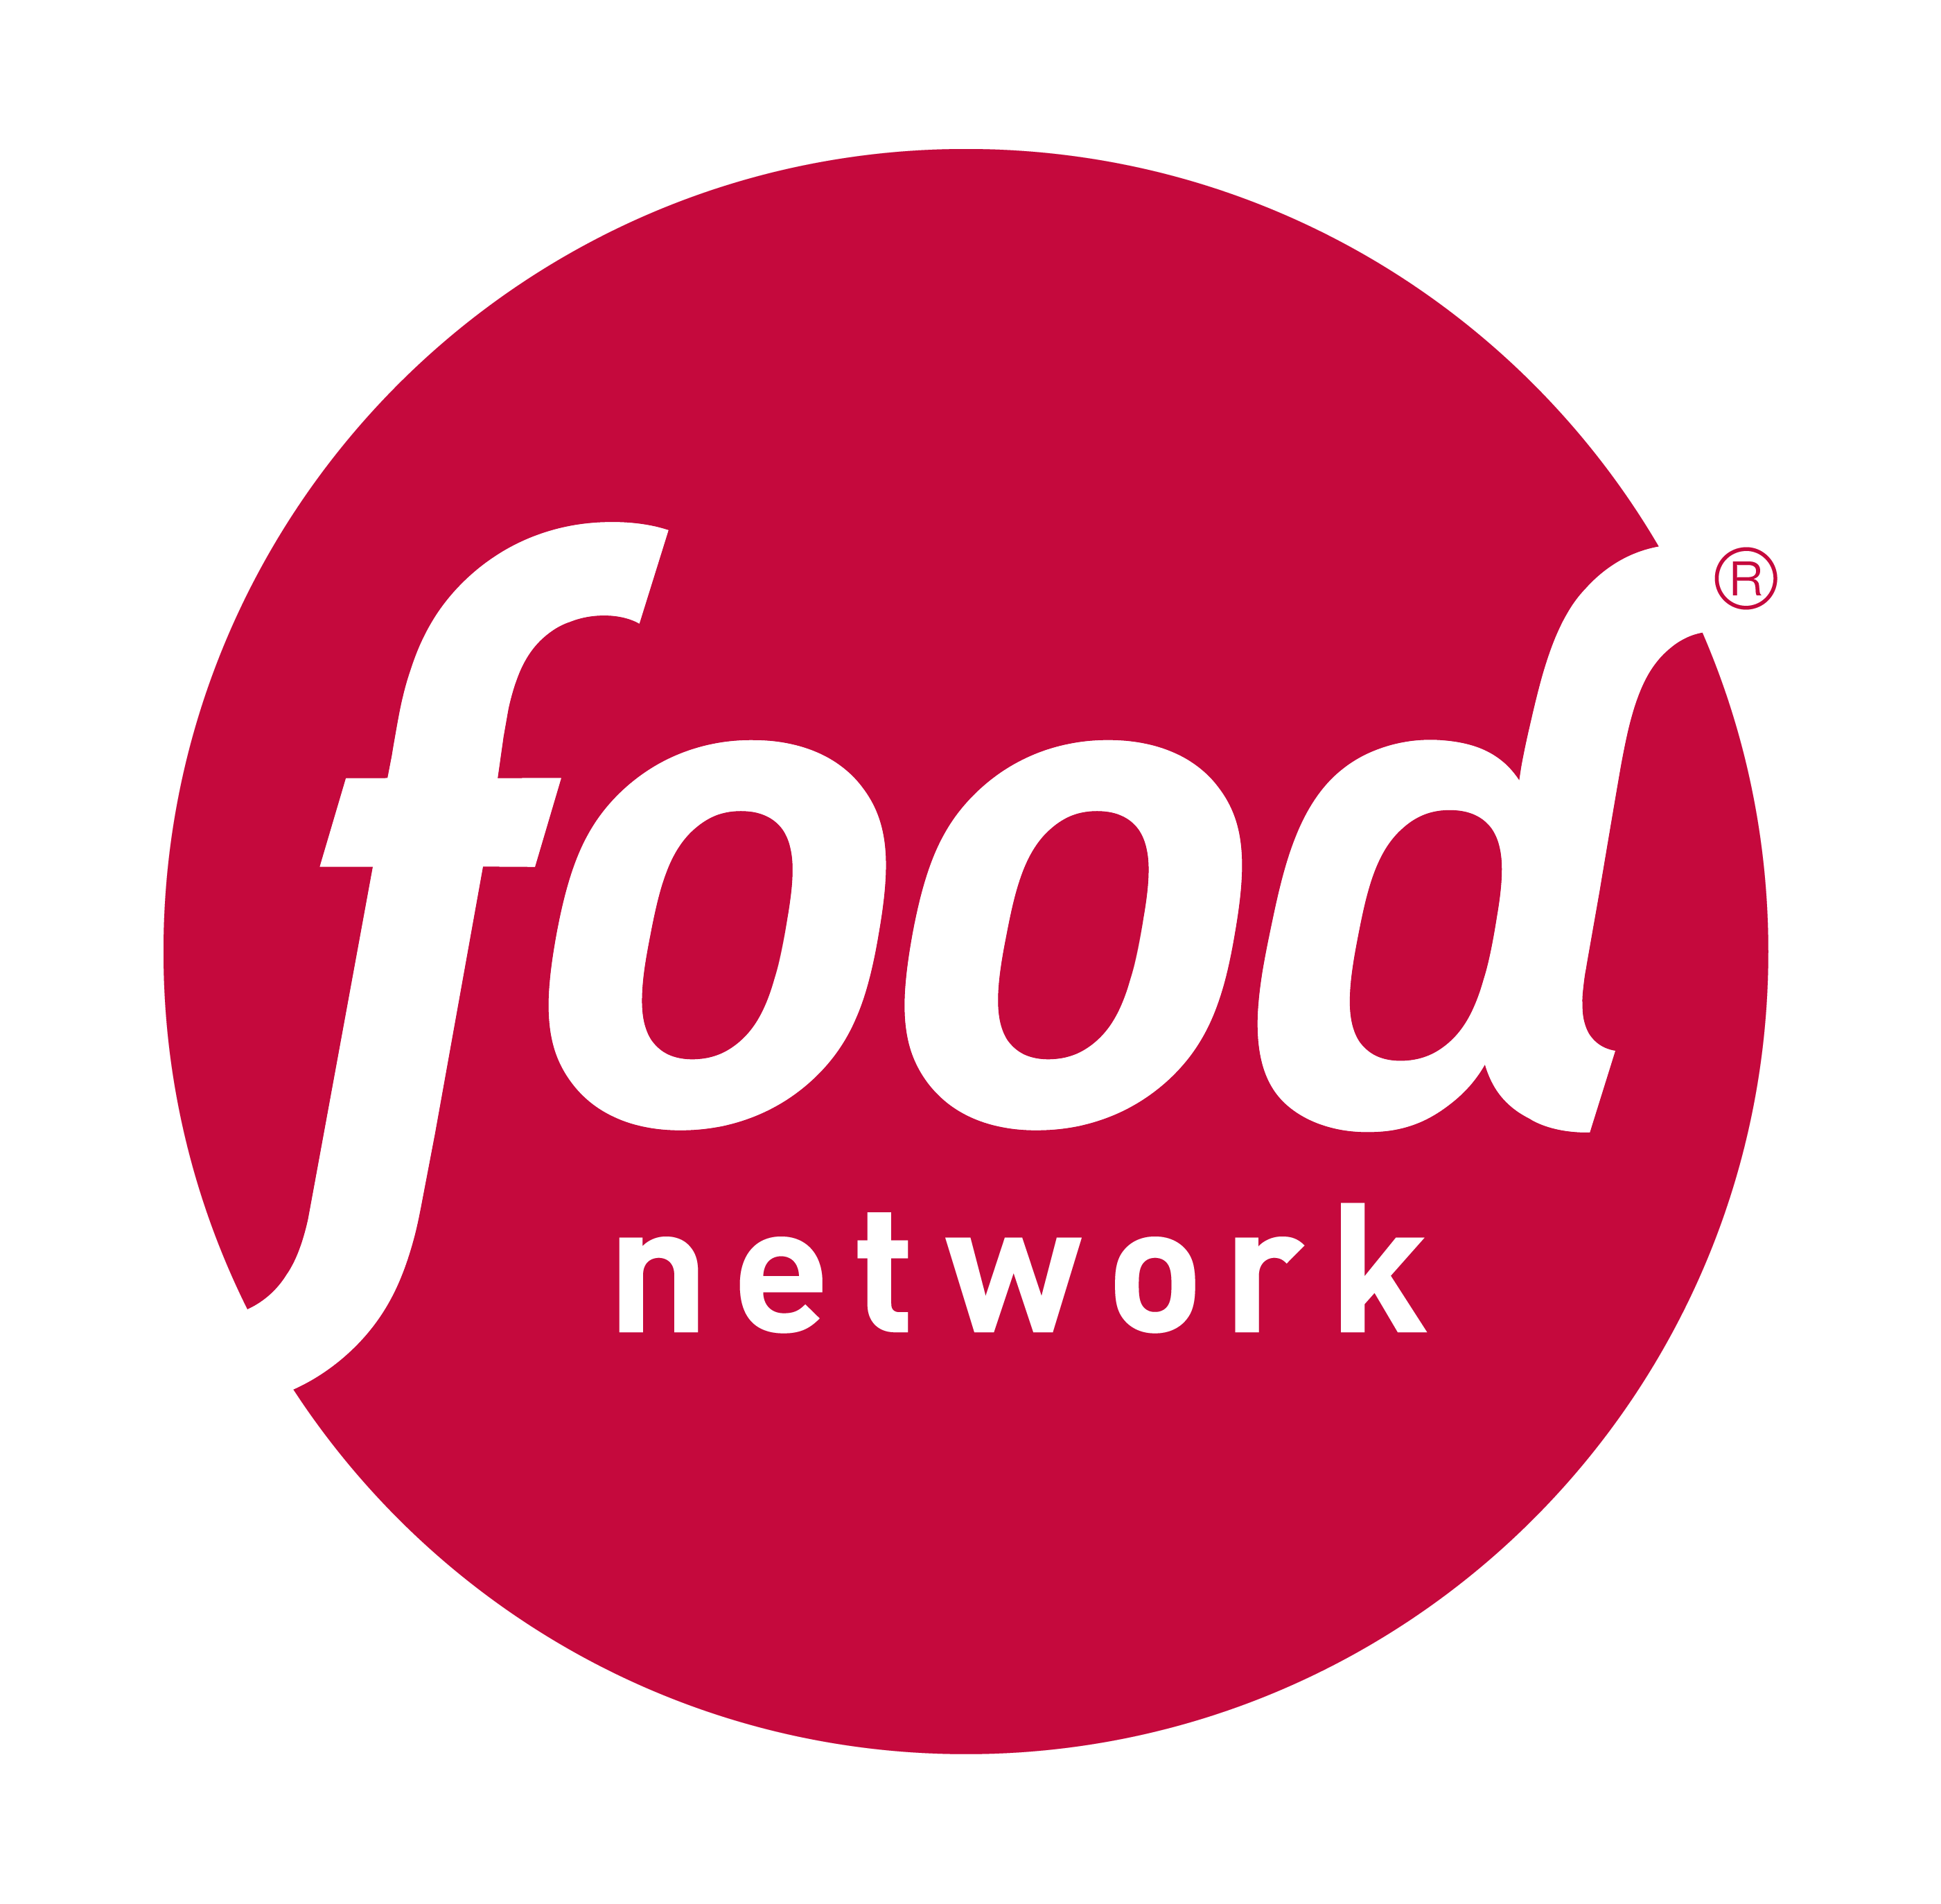 Food Network Help Center home page